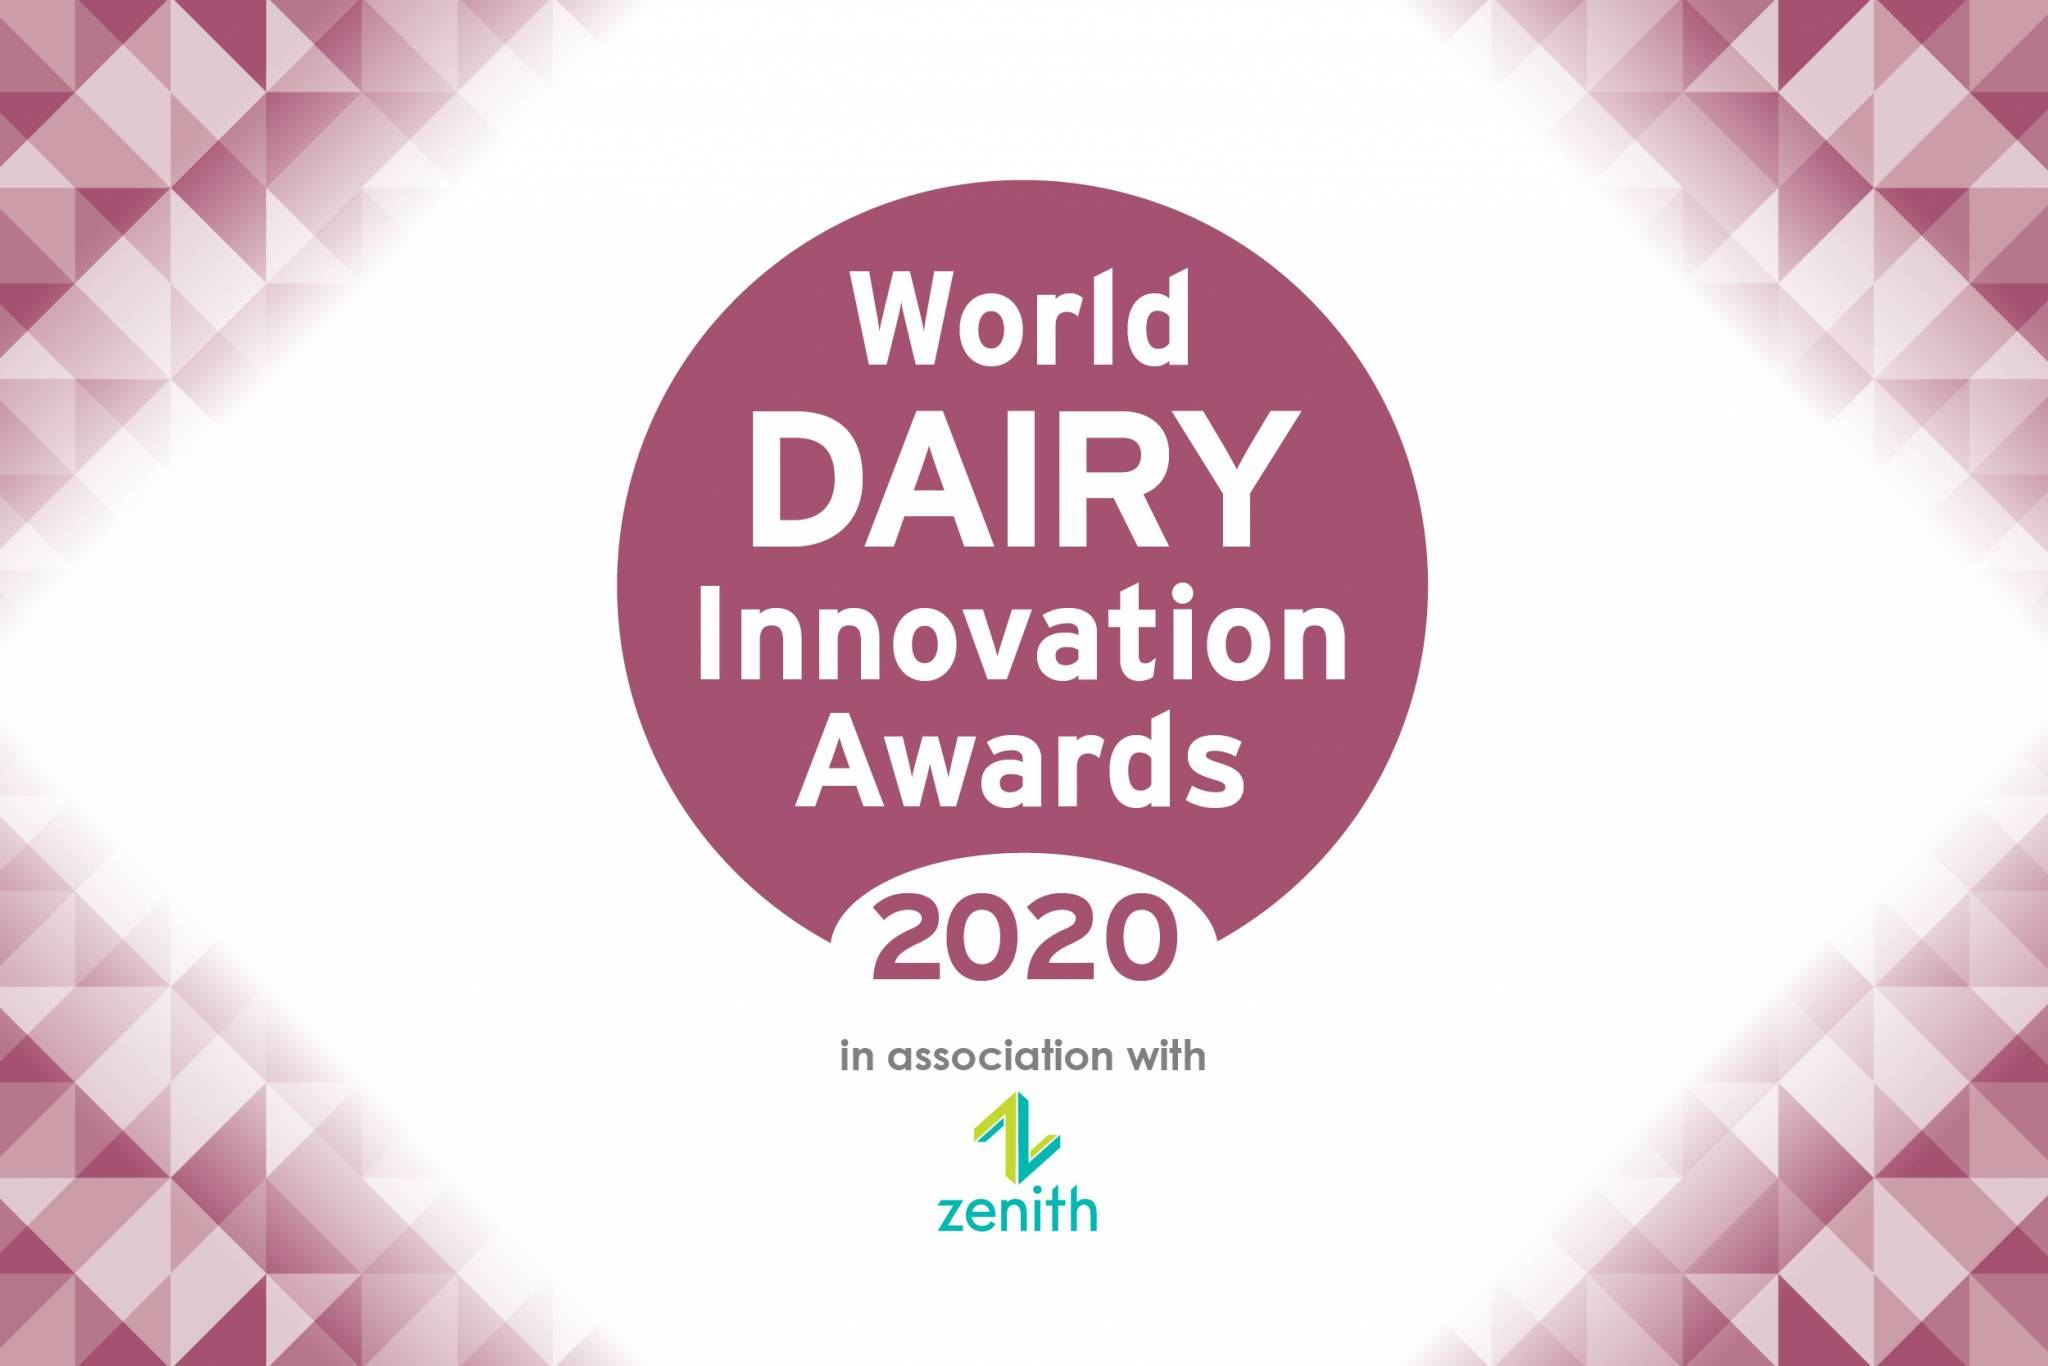 World Dairy Innovation Awards ceremony taking place today at 4pm BST: Watch here LIVE